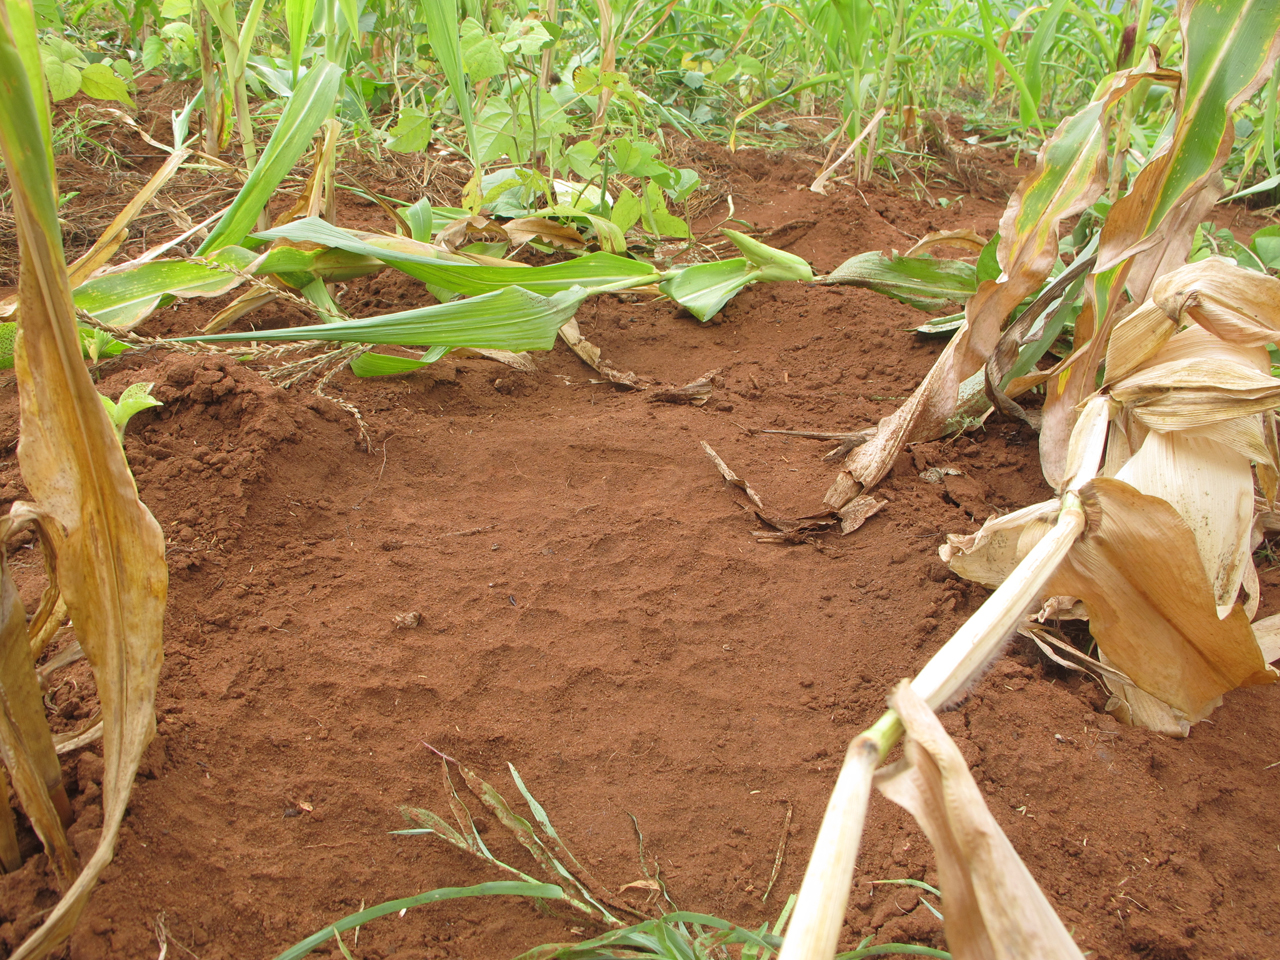 CROP-RAIDING-Damaged-crops